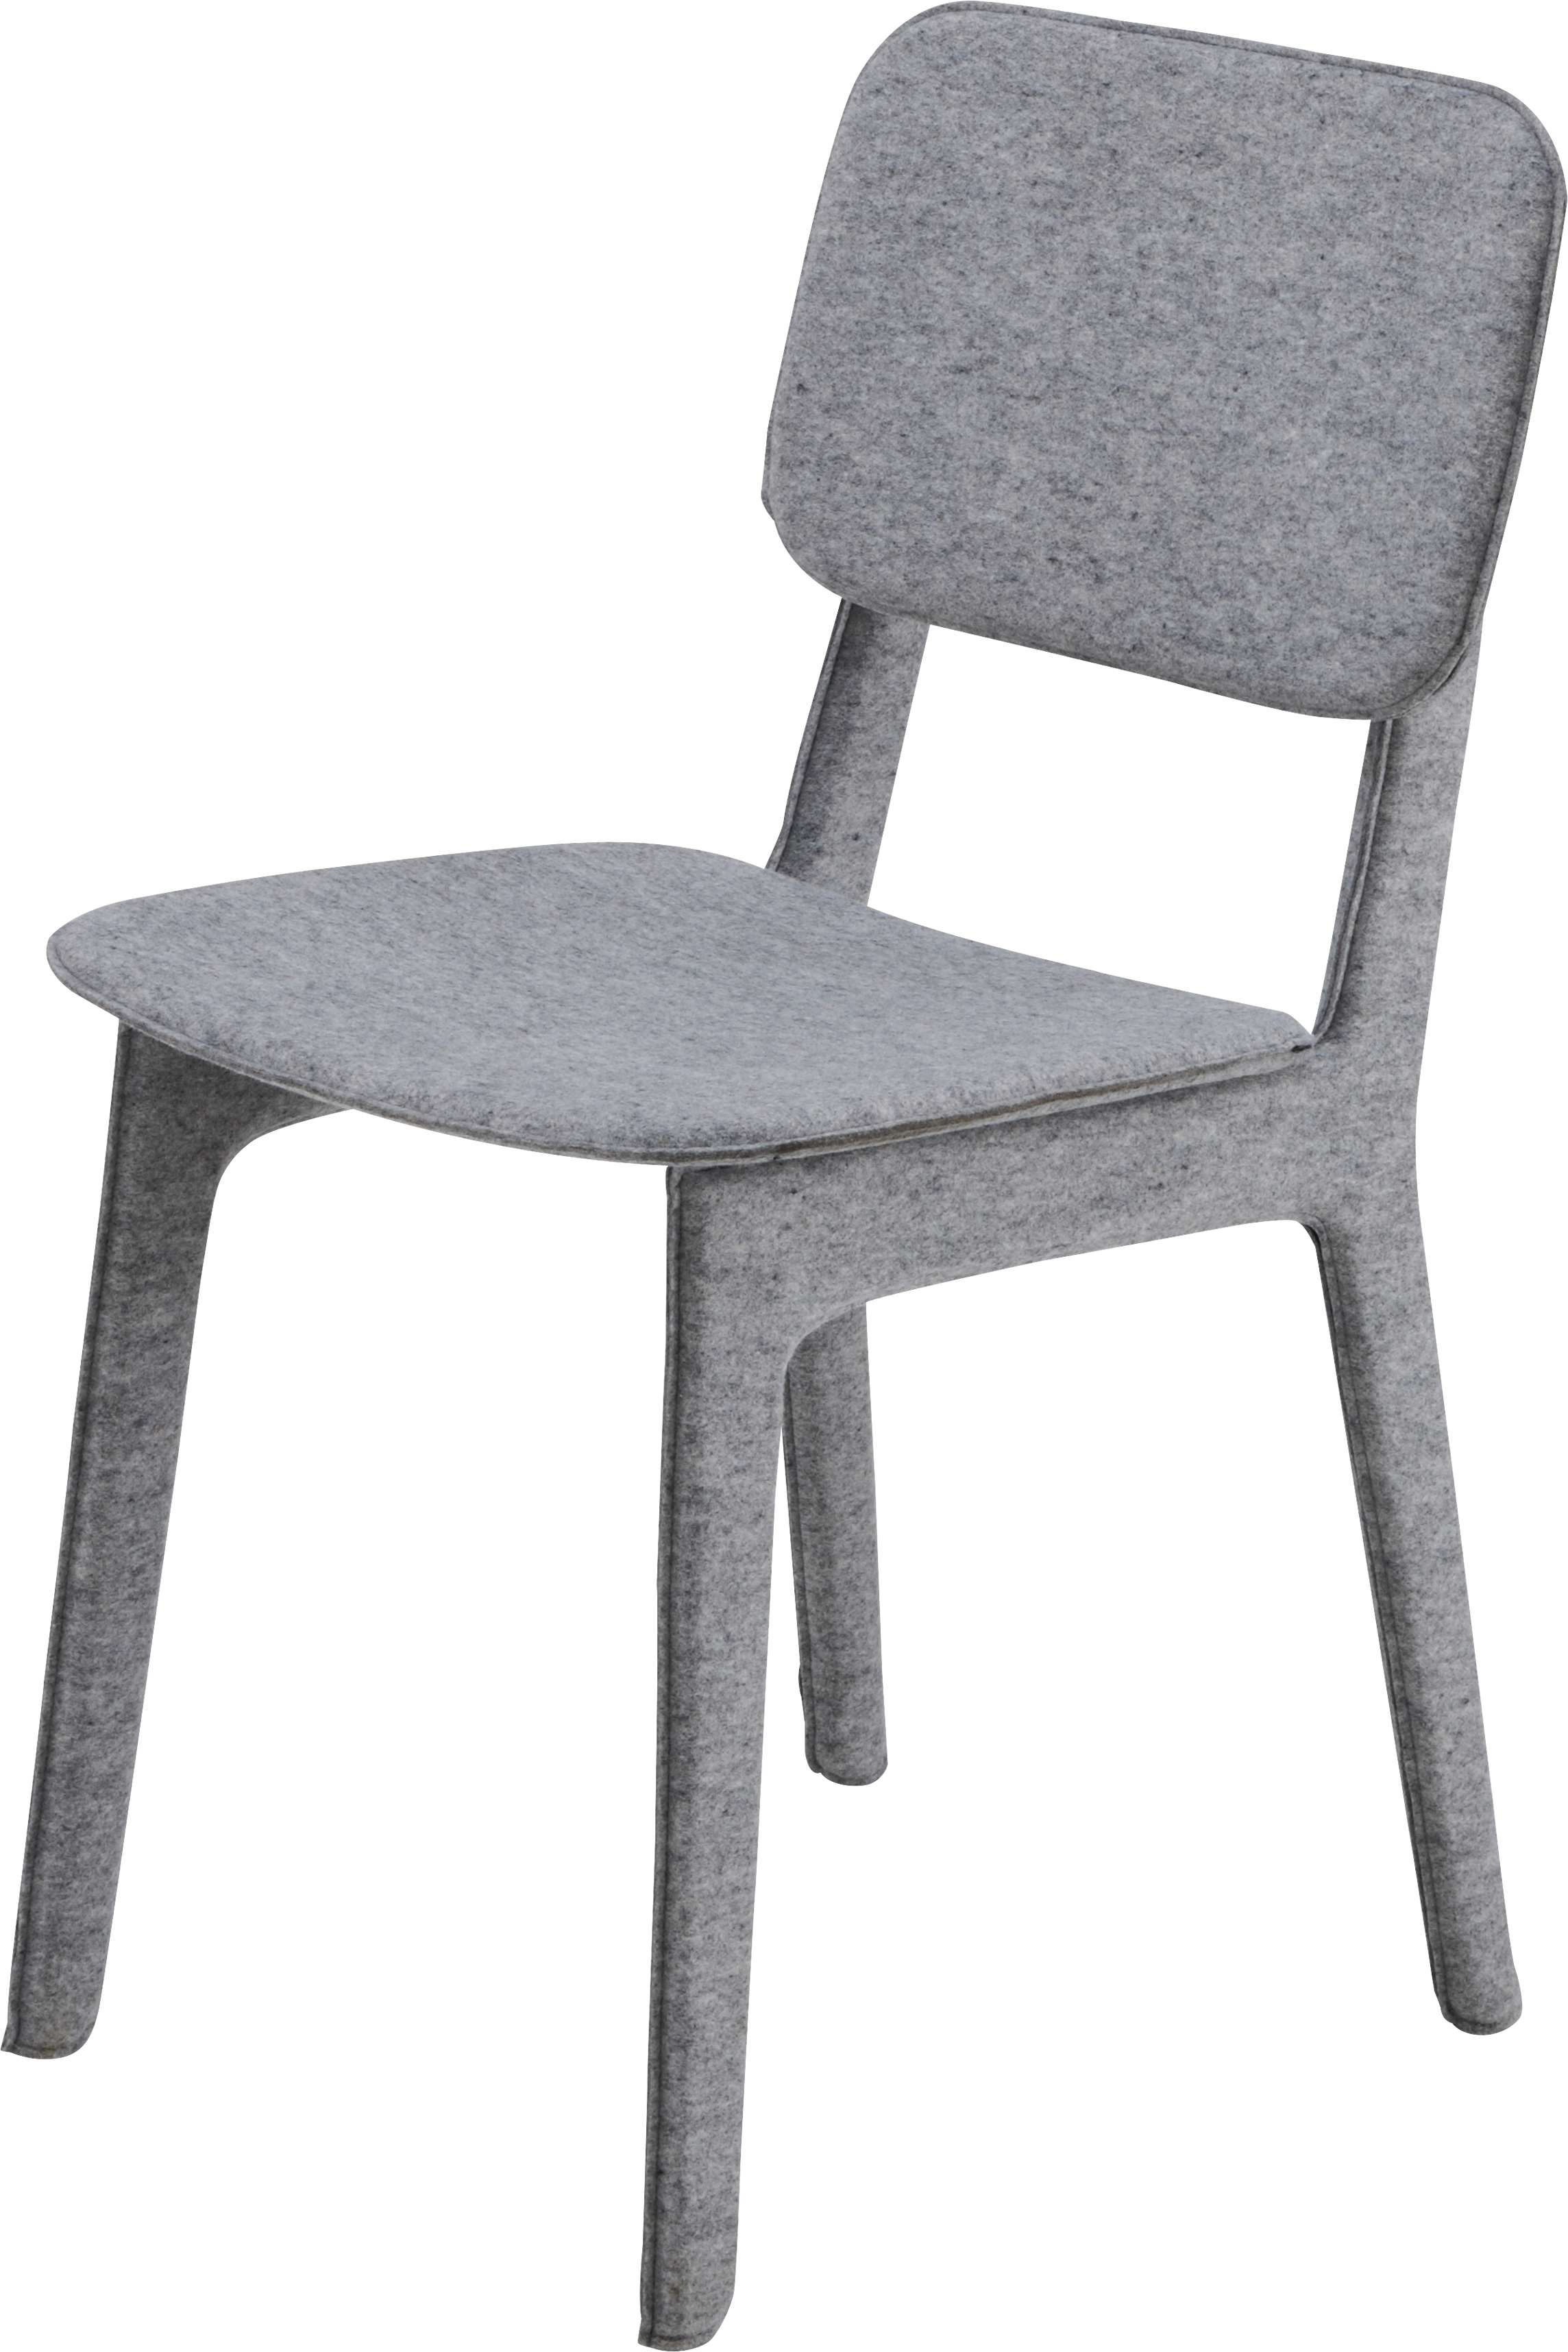 uploads chair chair PNG6859 24